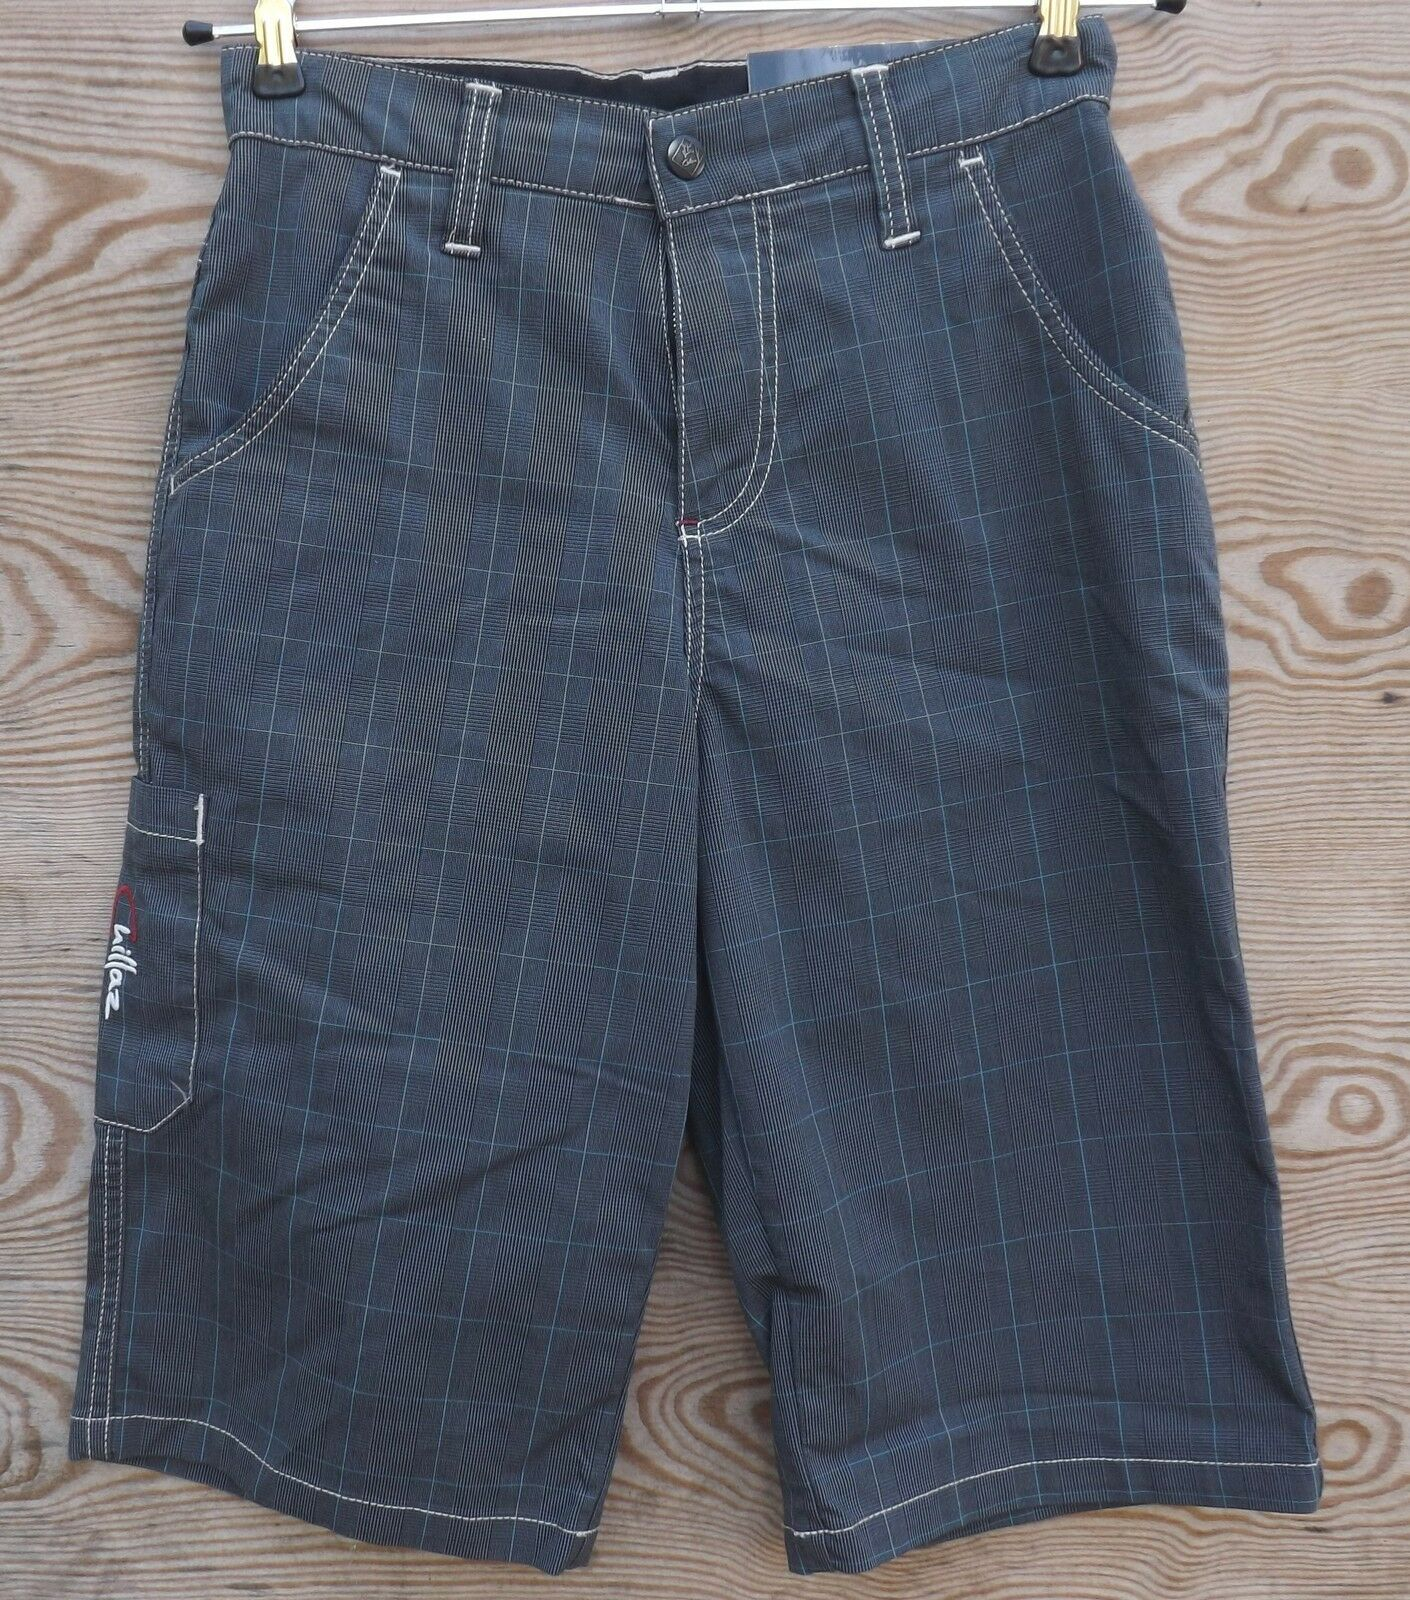 Chillaz Glencheck Stripes Shorty für Herren Gr. XS  glencheck stripes